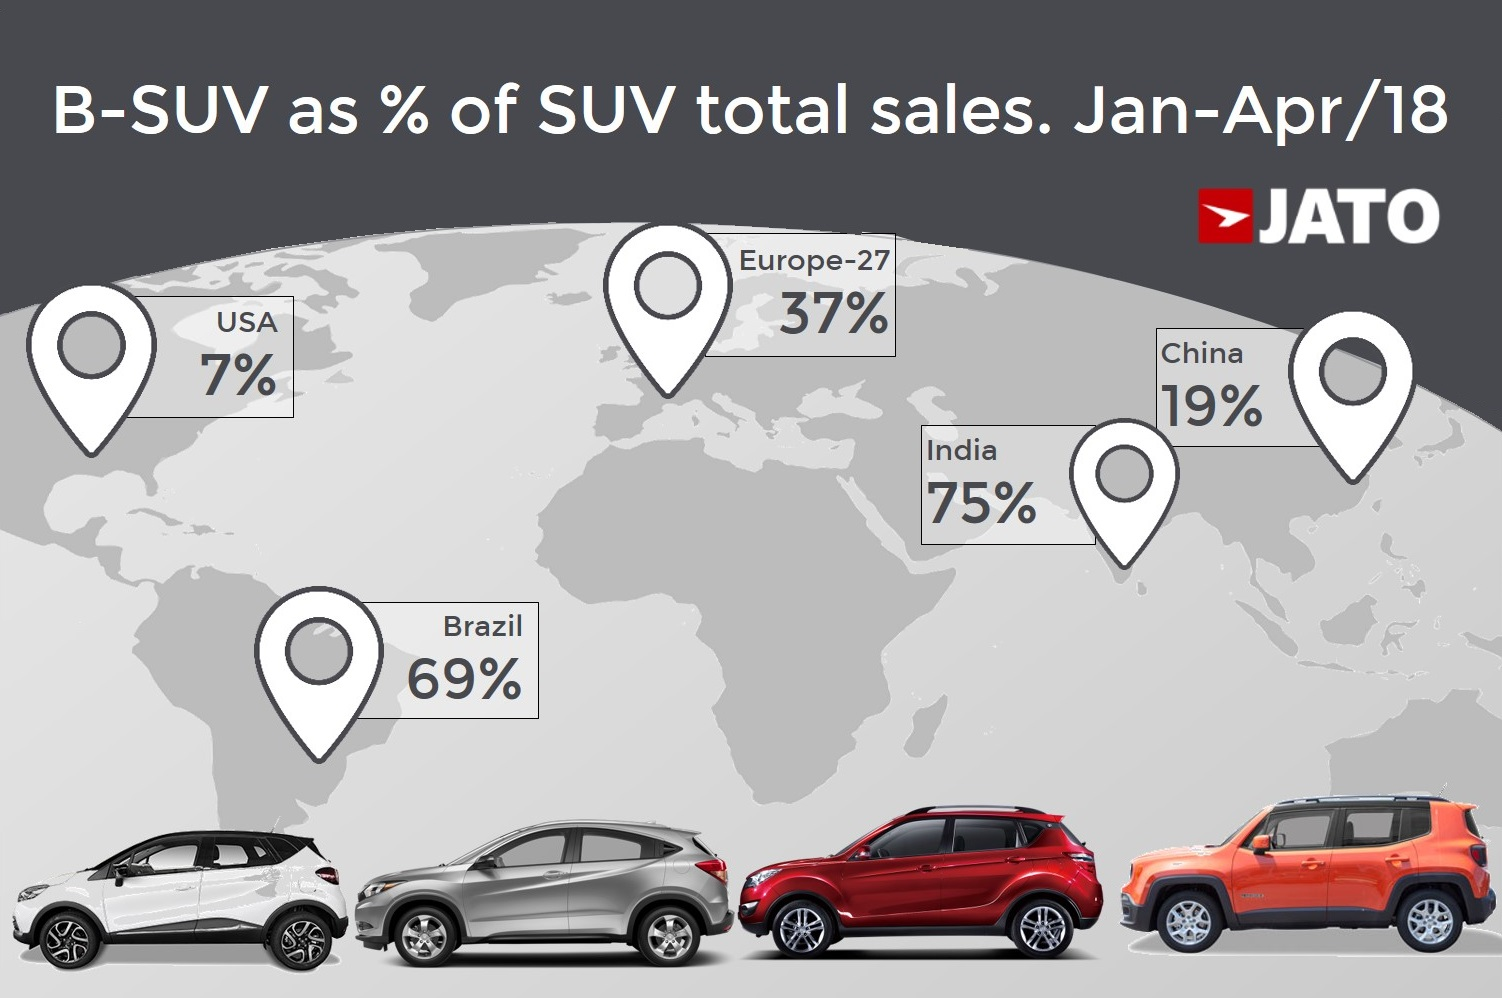 After The Arrival Of Super Suvs City Are Set To Become Next Growth Area For Already Over Saturated Suv Segment